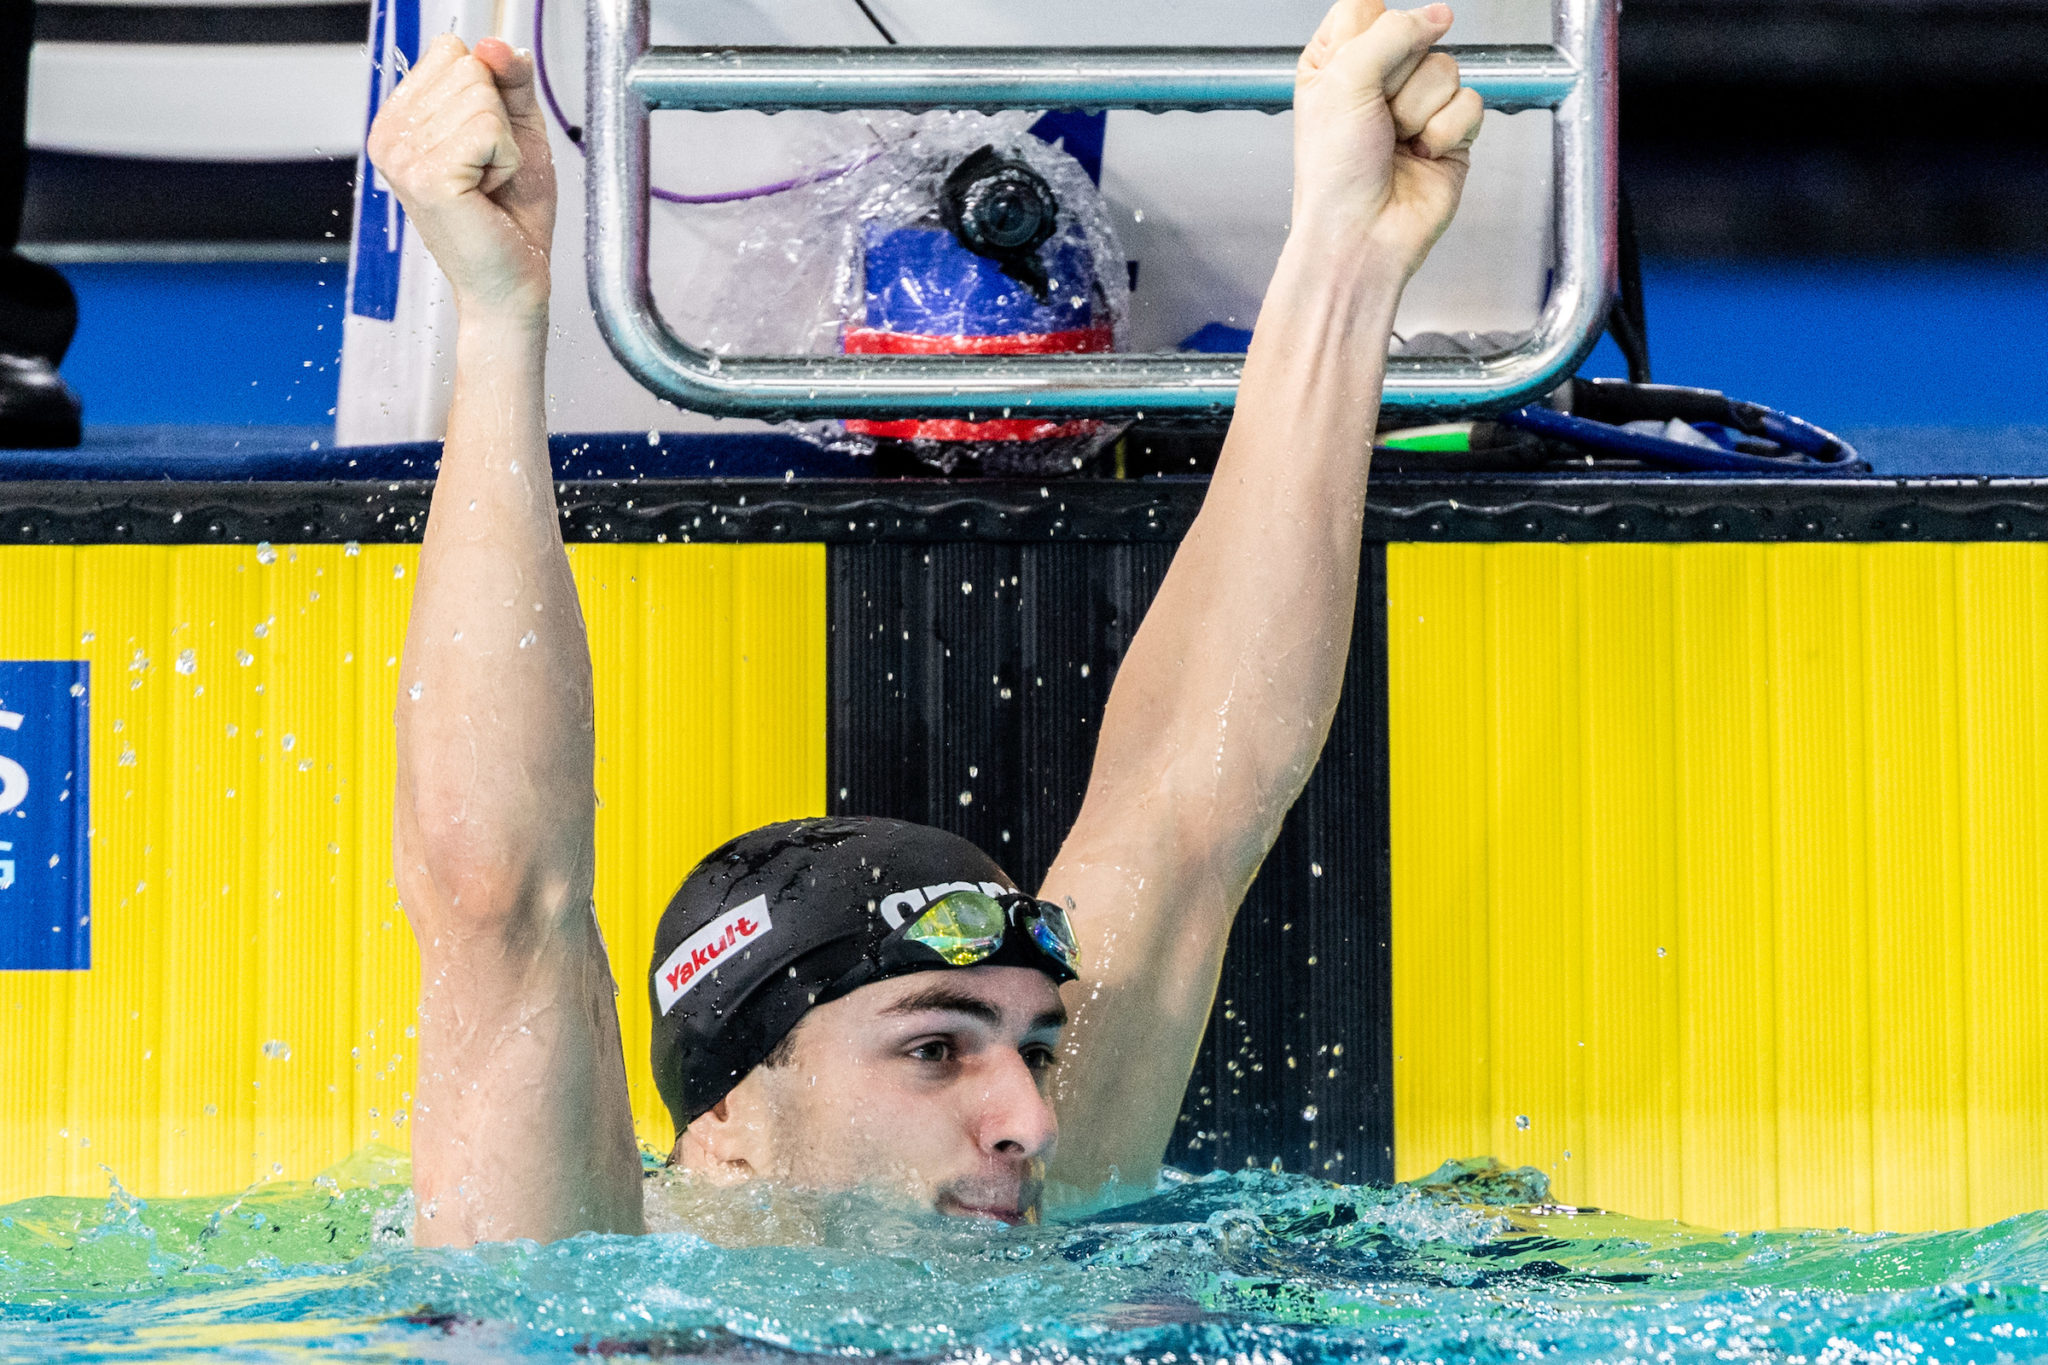 Arno Kamminga Fires Off Unofficial 58.4 100 Breast, 2:08 200 Breast Combo